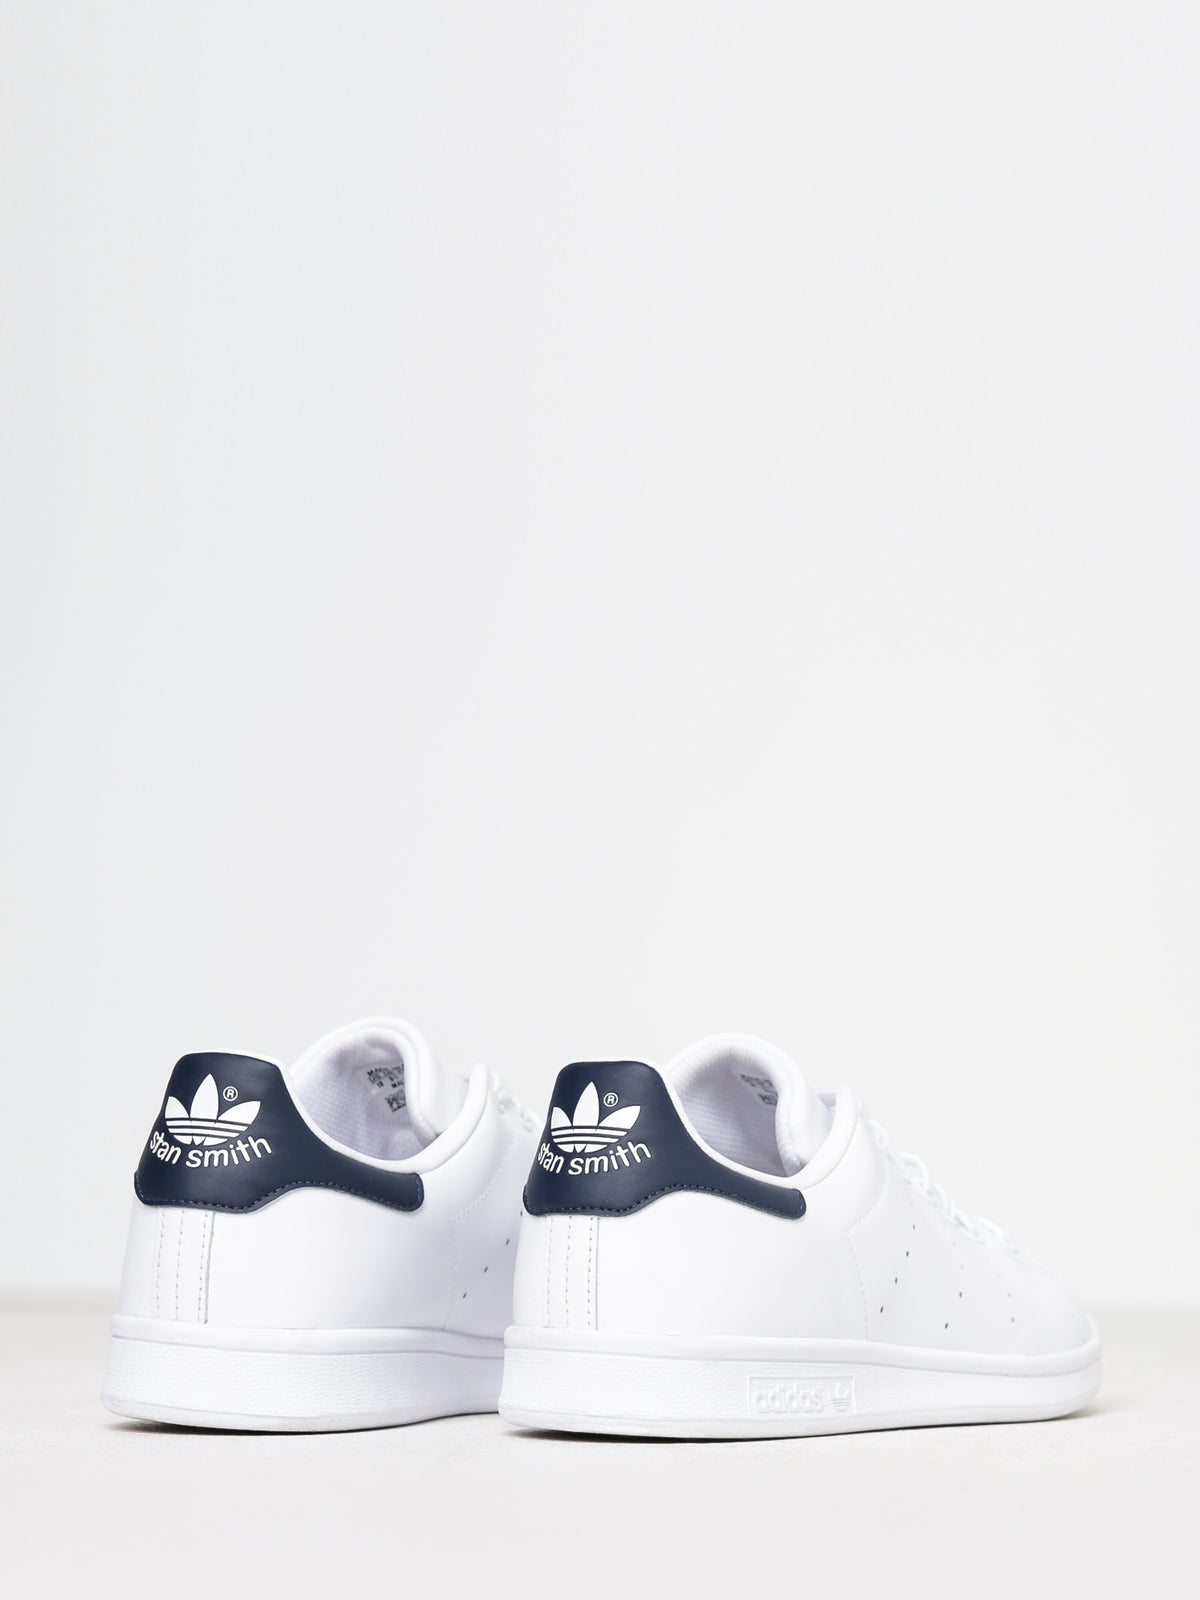 Unisex Stan Smith Sneakers in White & Blue